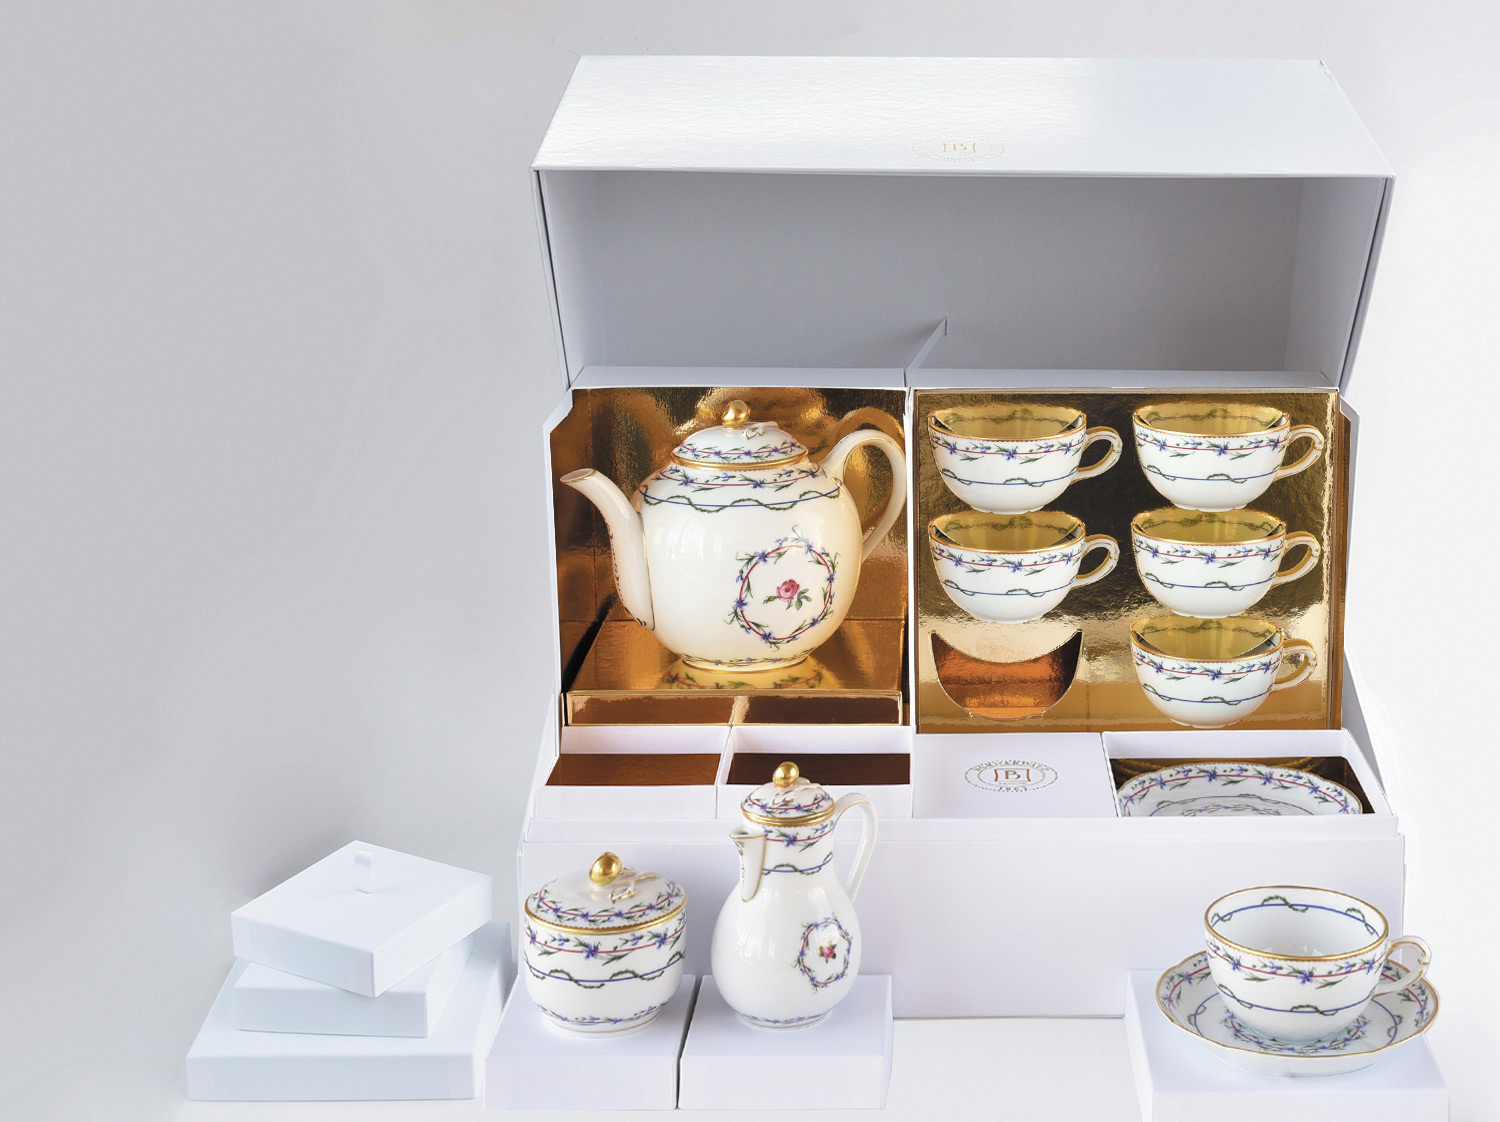 China Large tea gift case (teapot, creamer, sugar bowl, 6 tea cups and saucers) of the collection Gobelet du roy | Bernardaud